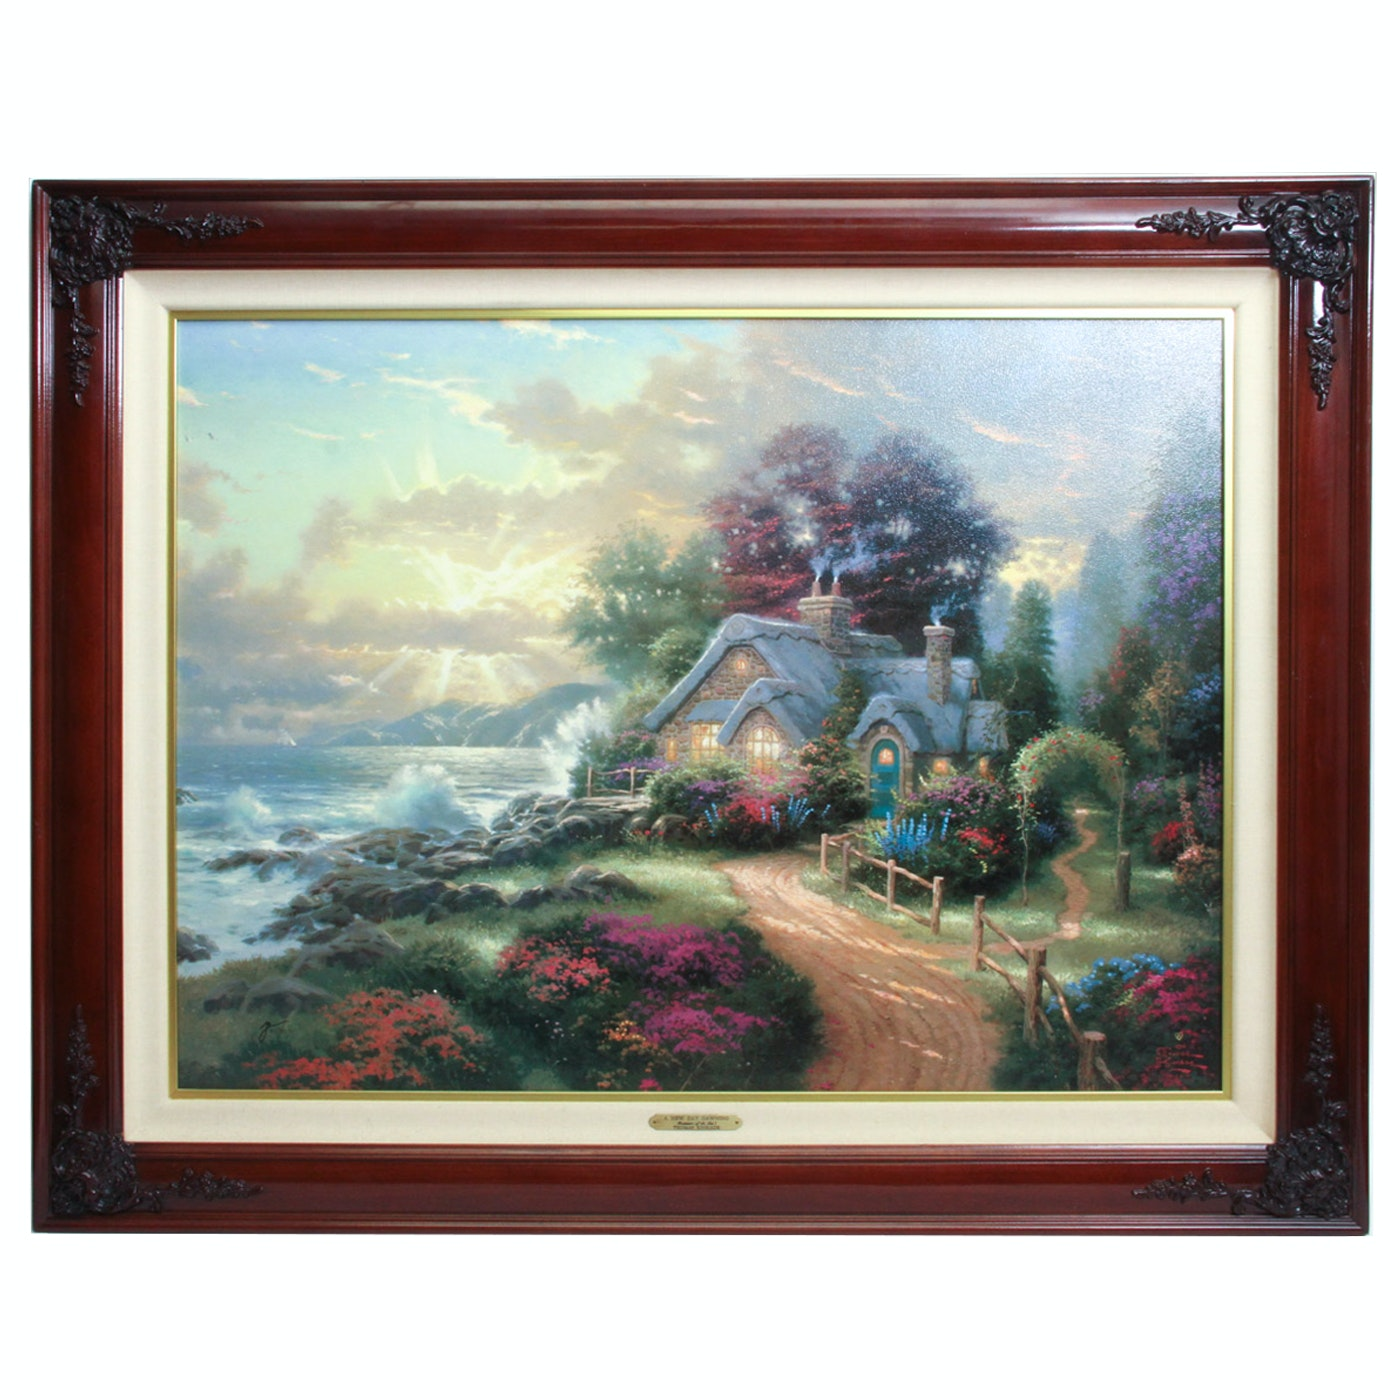 """Limited Edition Offset Lithograph After Thomas Kinkade """"A New Day Dawning"""""""